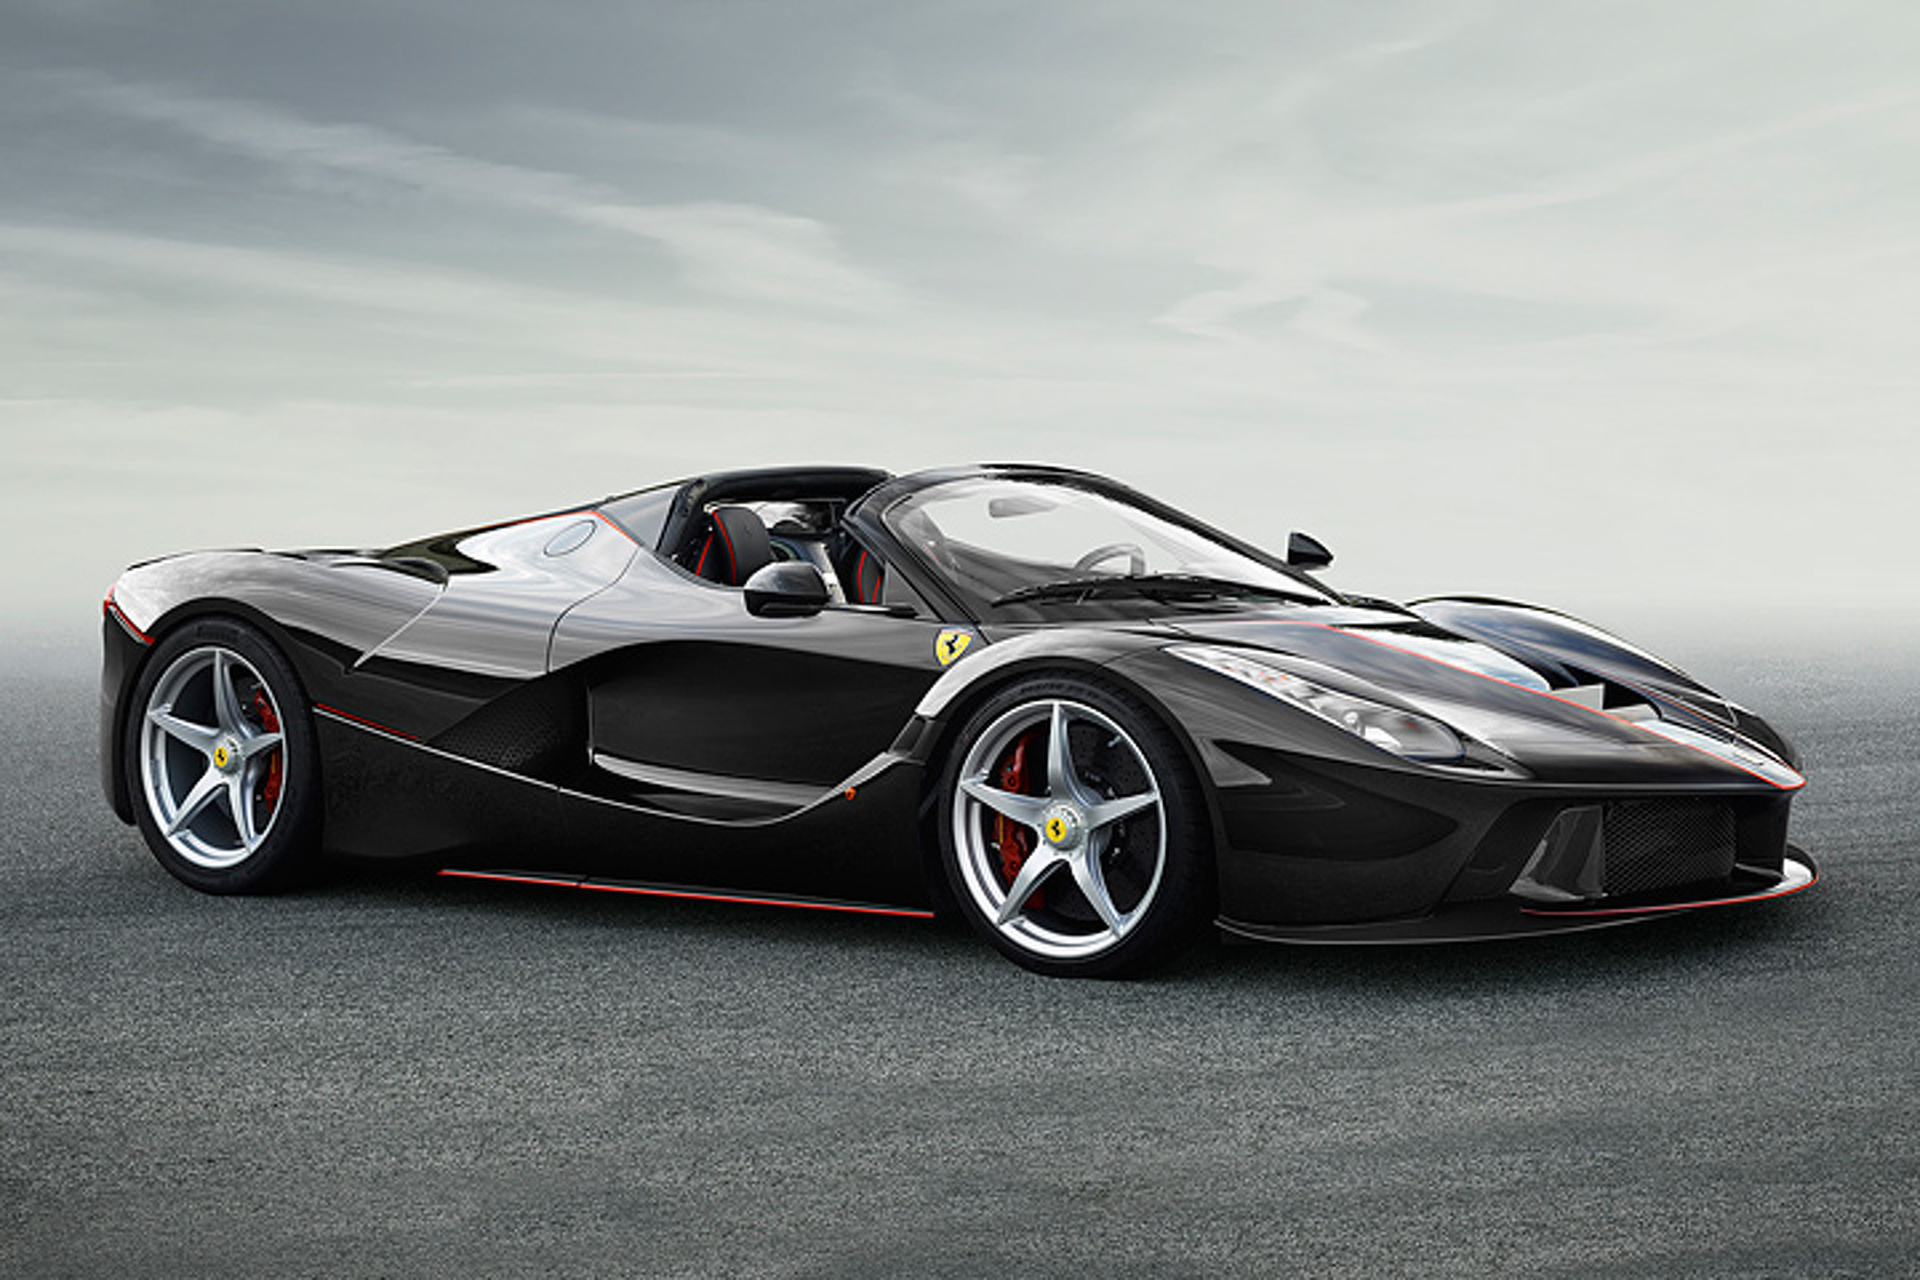 The 2017 ferrari laferrari convertible is here and already sold out publicscrutiny Gallery